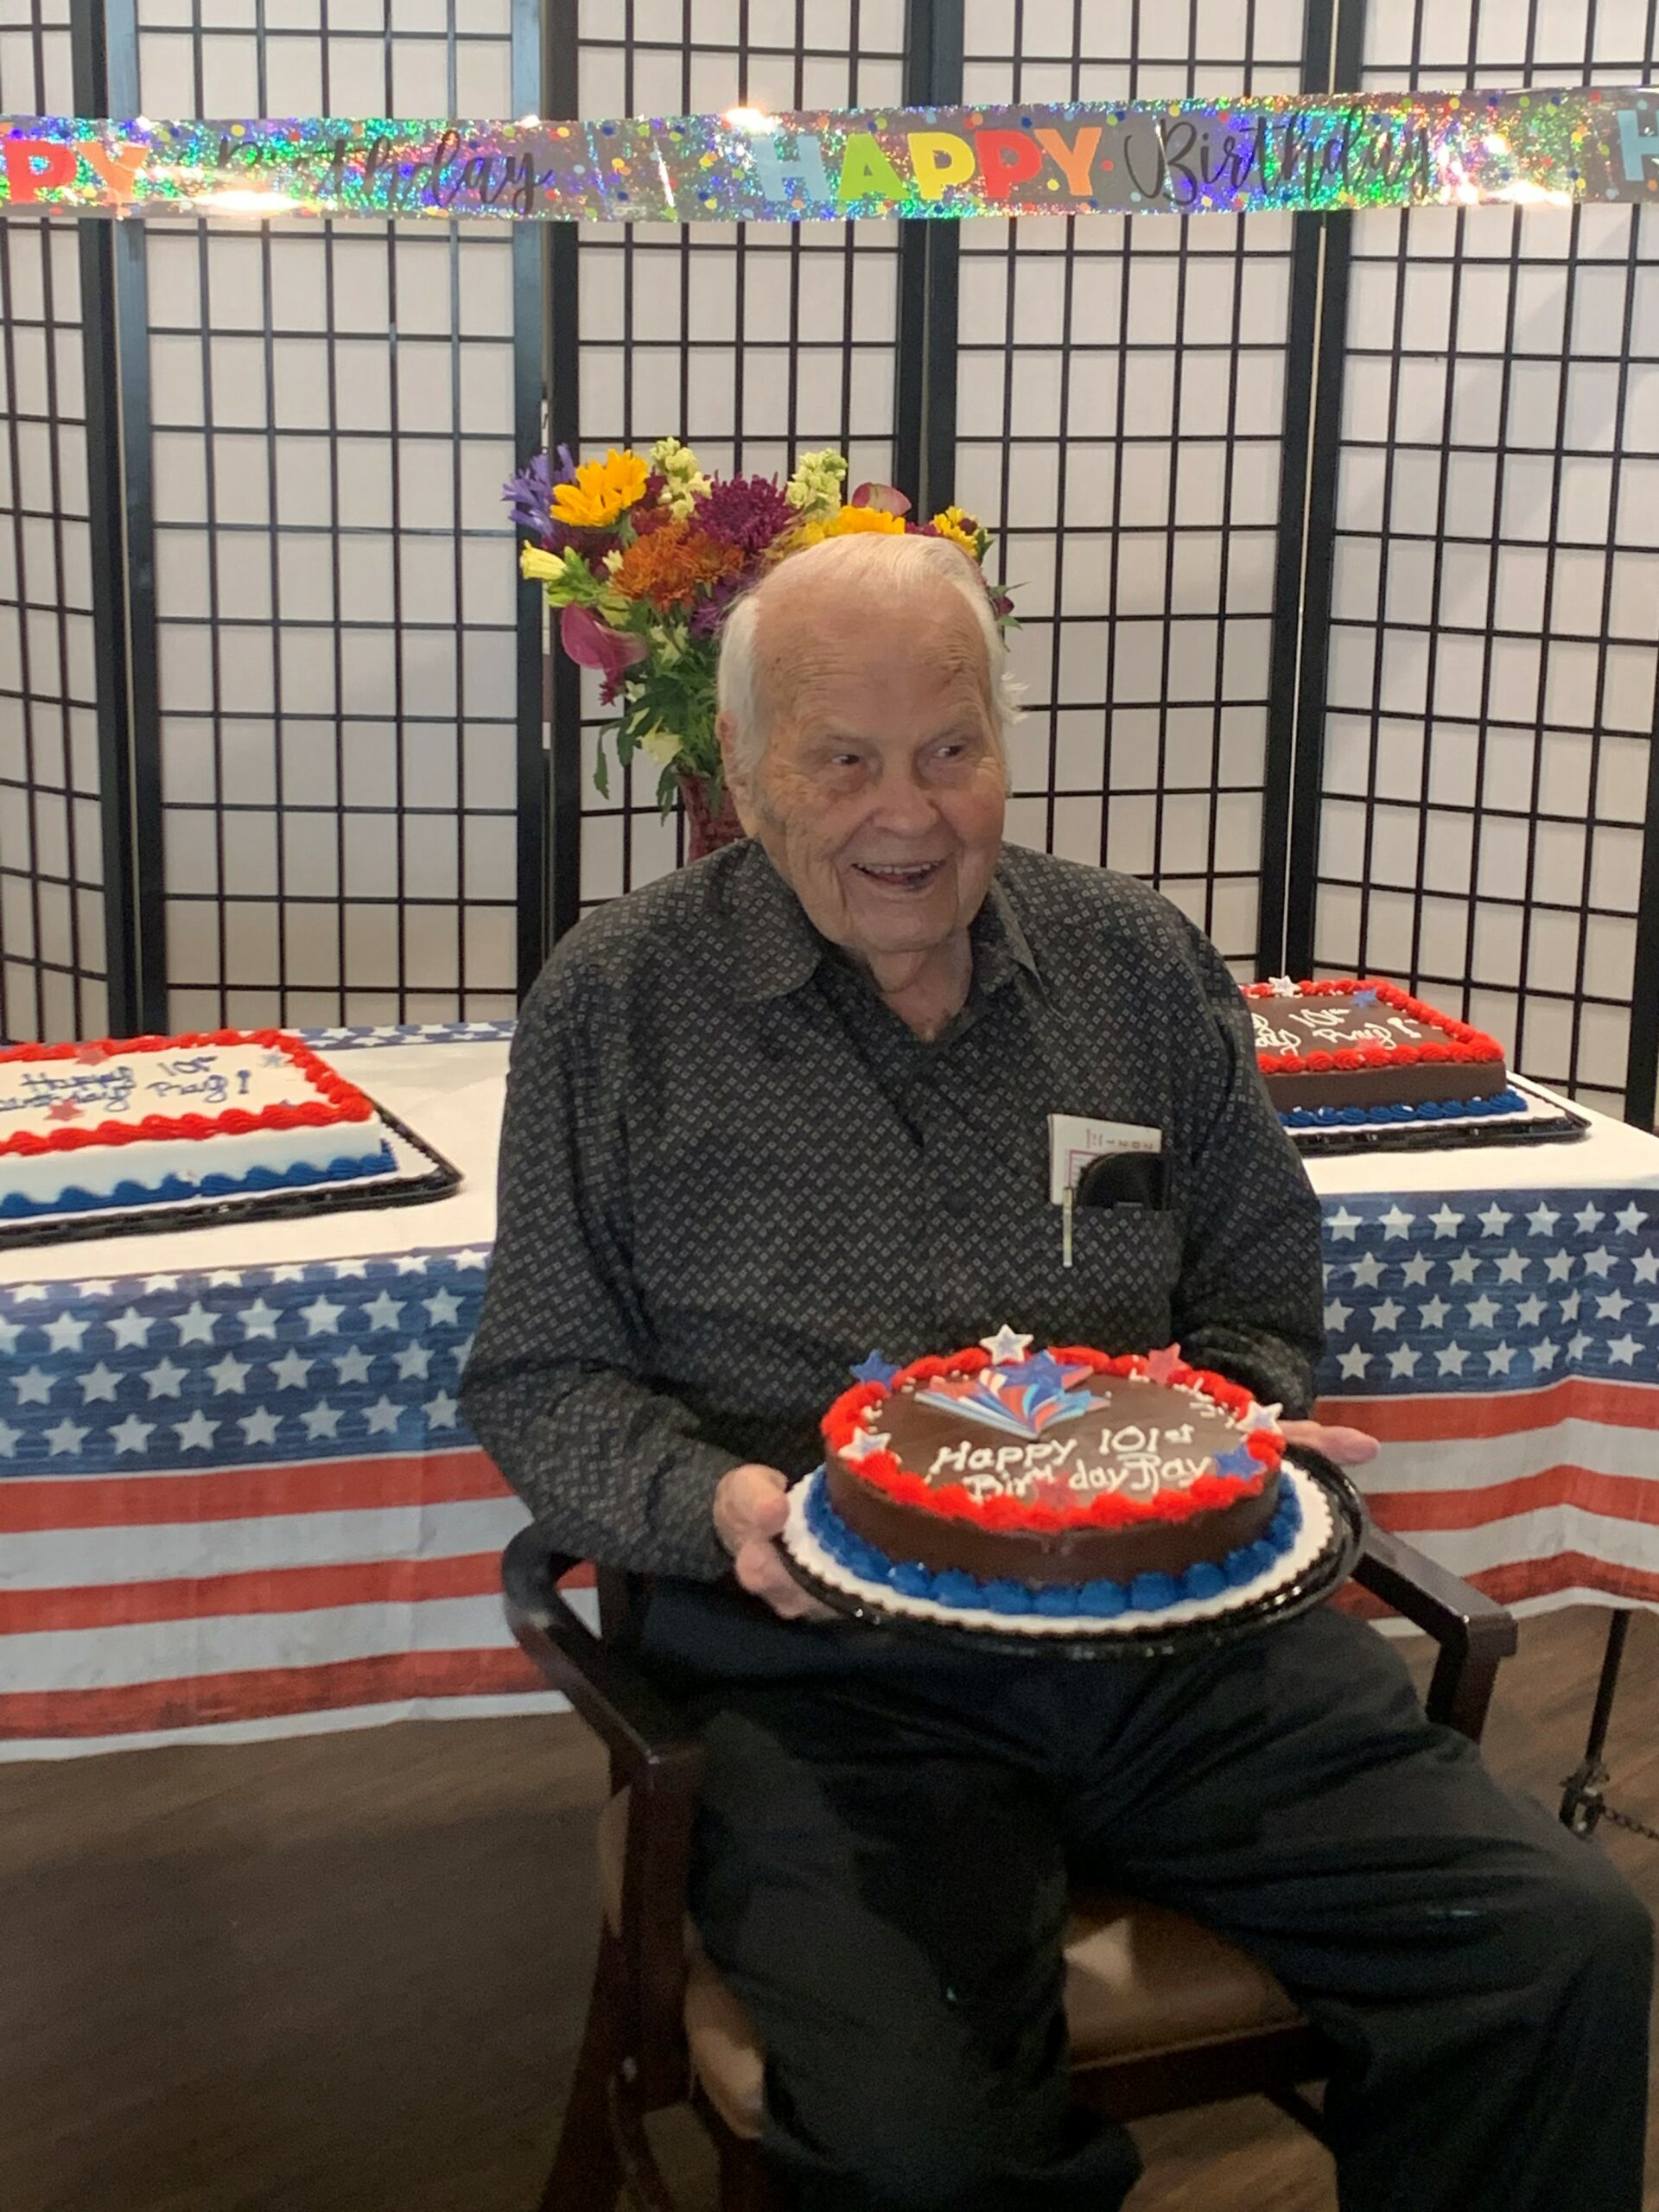 Ray's 101st Birthday!- Today we celebrated the 101st birthday of one of our beloved veterans, Ray by having a patriotic luncheon followed by Ray being presented a Quilt of Valor from the Bella Vista Calico Cut-Ups Quilting Group for his service. Residents, Staff, Family Members and the local new stations cheered as we honored a former POW and very special friend of ours long and joyful life!